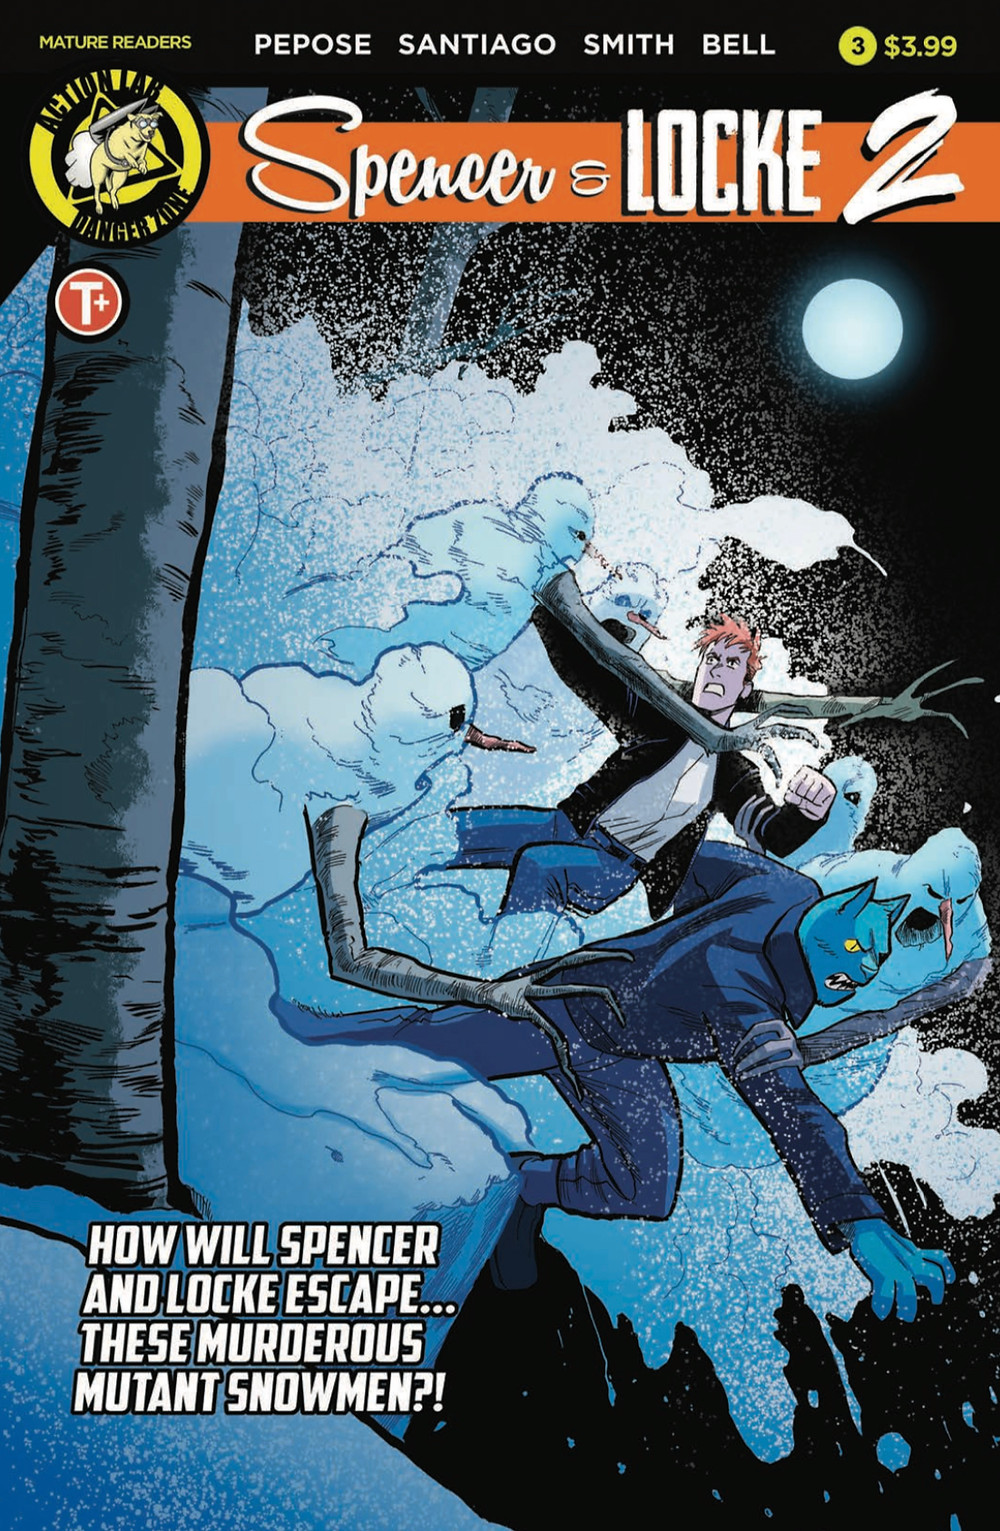 Spencer & Locke 2 #3, cover, Action Lab Entertainment, Pepose/Santiago, Jr.